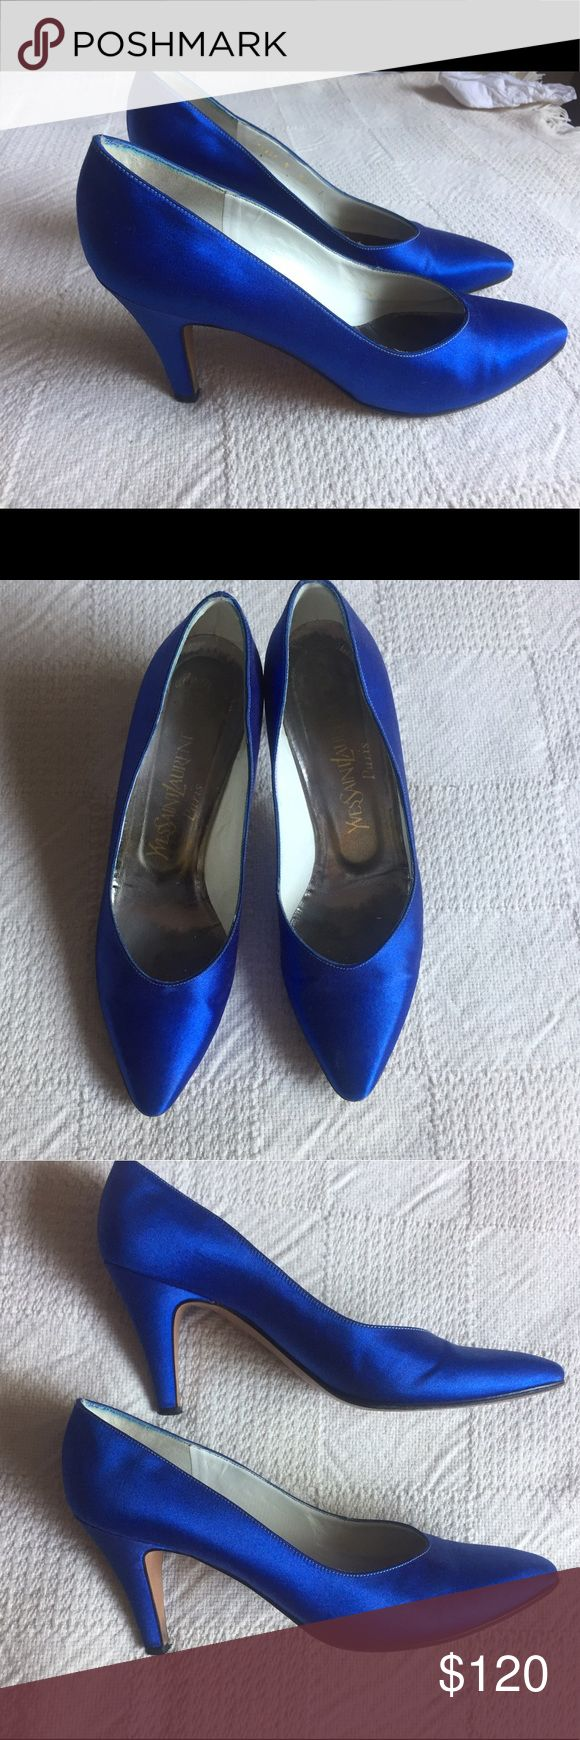 Yves Saint Laurent bright cobalt blue kitten heels Authentic designer YSL Yves Saint Laurent bright electric blue kitten pumps. Gorgeous shoes! Very similar to the famous ones always seen on Carrie Bradshaw in Sex and the City. Excellent condition. Only minor flaws. Very few wears too, as you can see from the clean bottoms. Made in Italy. Satin. Easy to wear all day because of the low kitten heel. Size 8.5. Color is a bright cobalt or royal blue. Or peacock blue. Great pop of color for a…